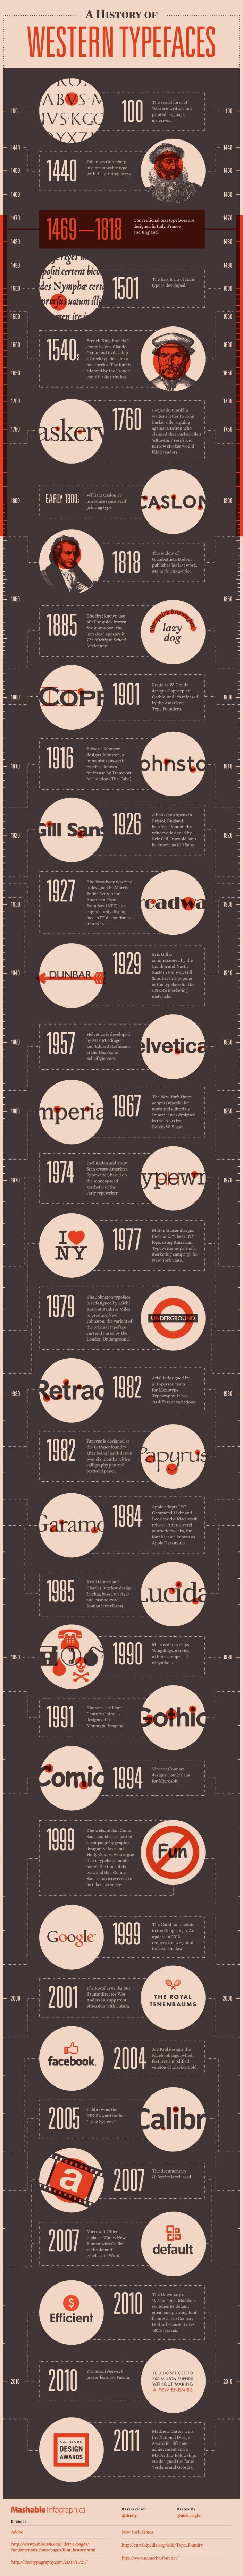 history-of-western-typefaces